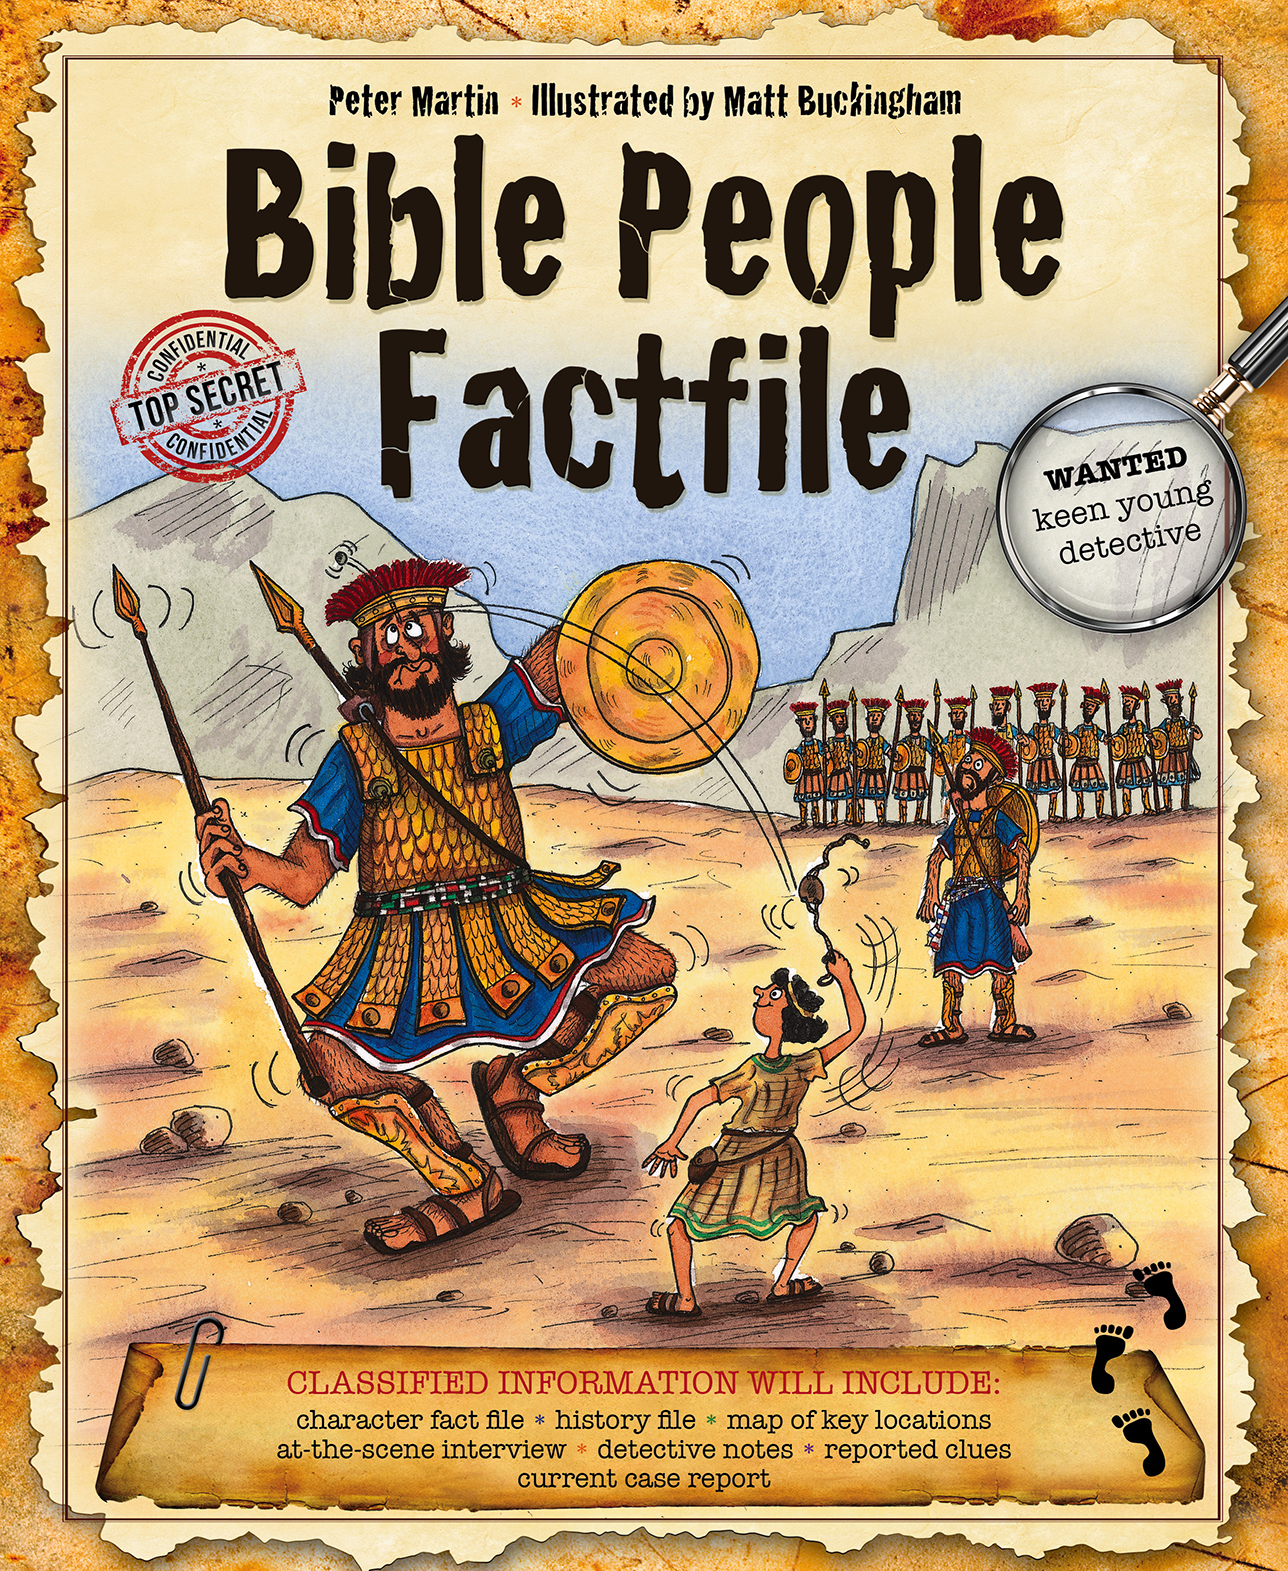 More information on Bible People Factfile